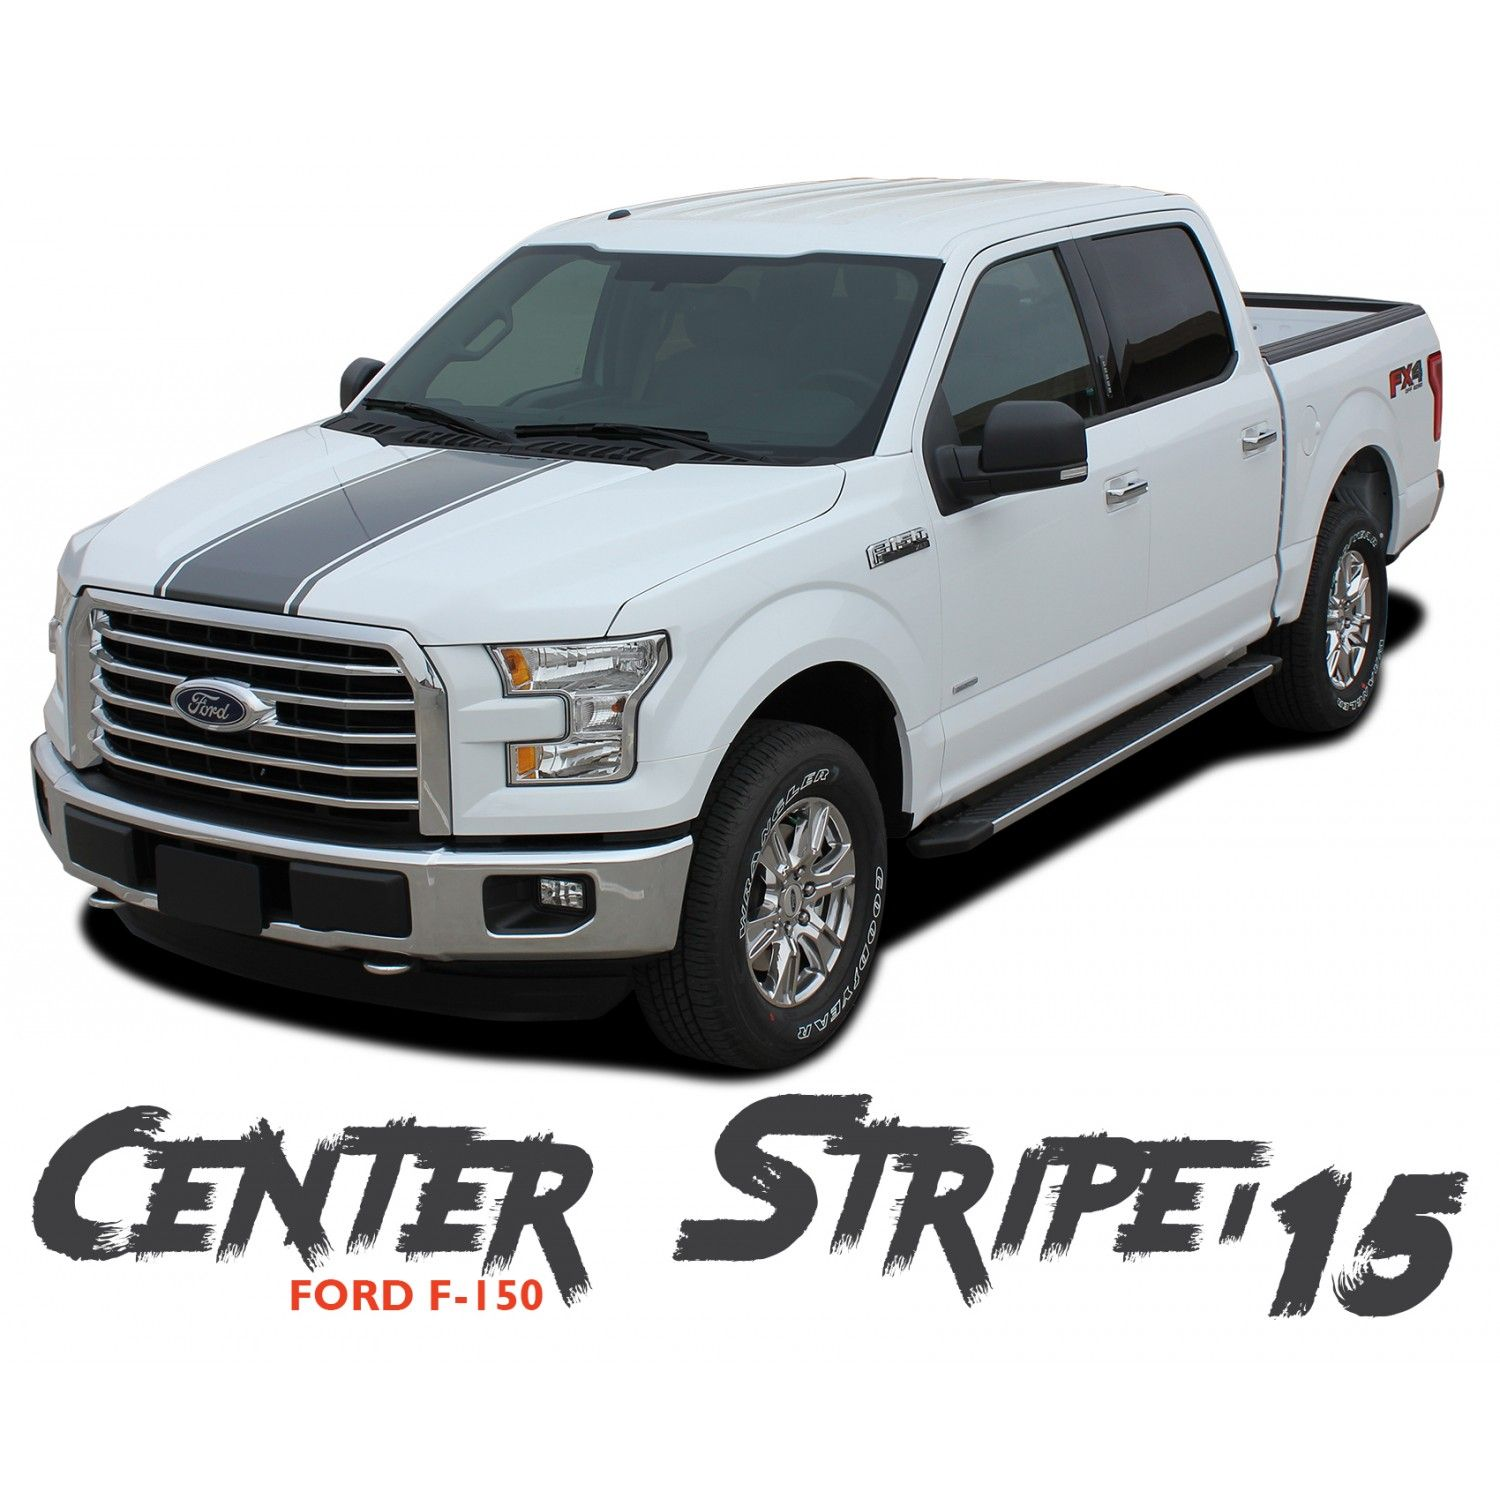 Ford f 150 center stripe 15 center hood tailgate racing stripes vinyl graphics decals kit